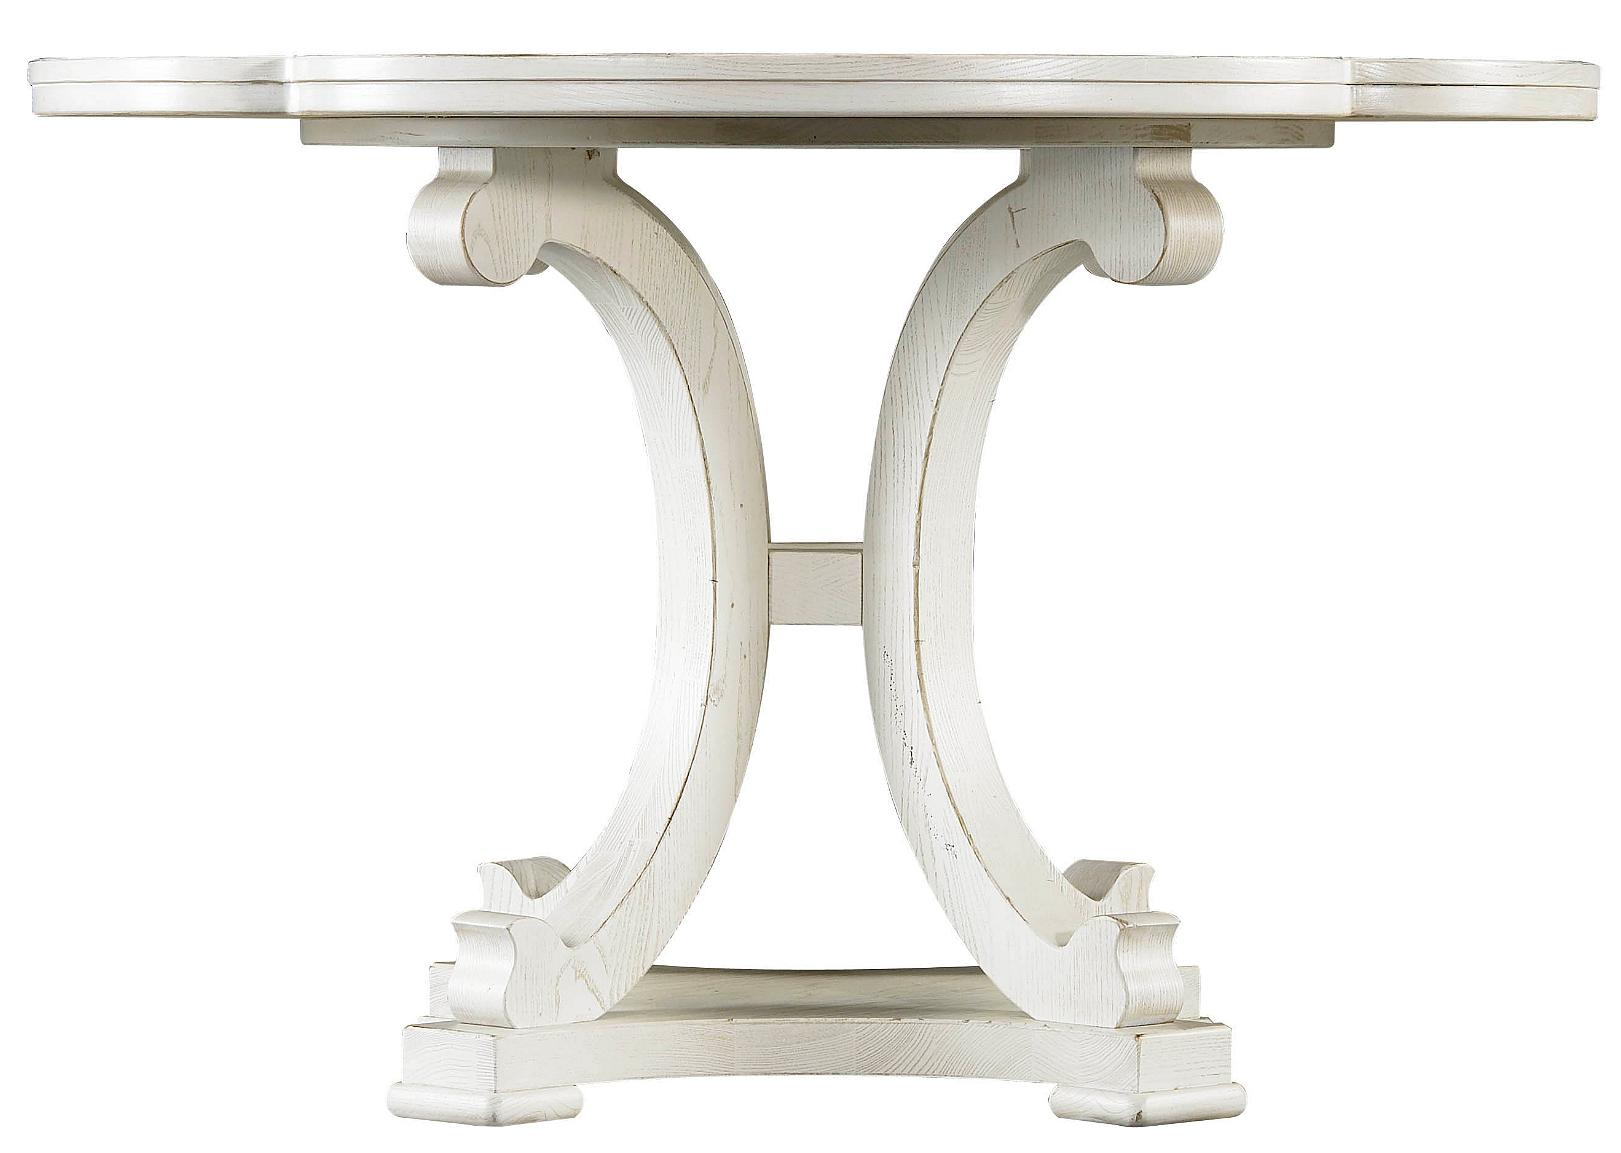 Stanley Furniture Coastal Living Resort Seascape Table - Item Number: 062-A1-34